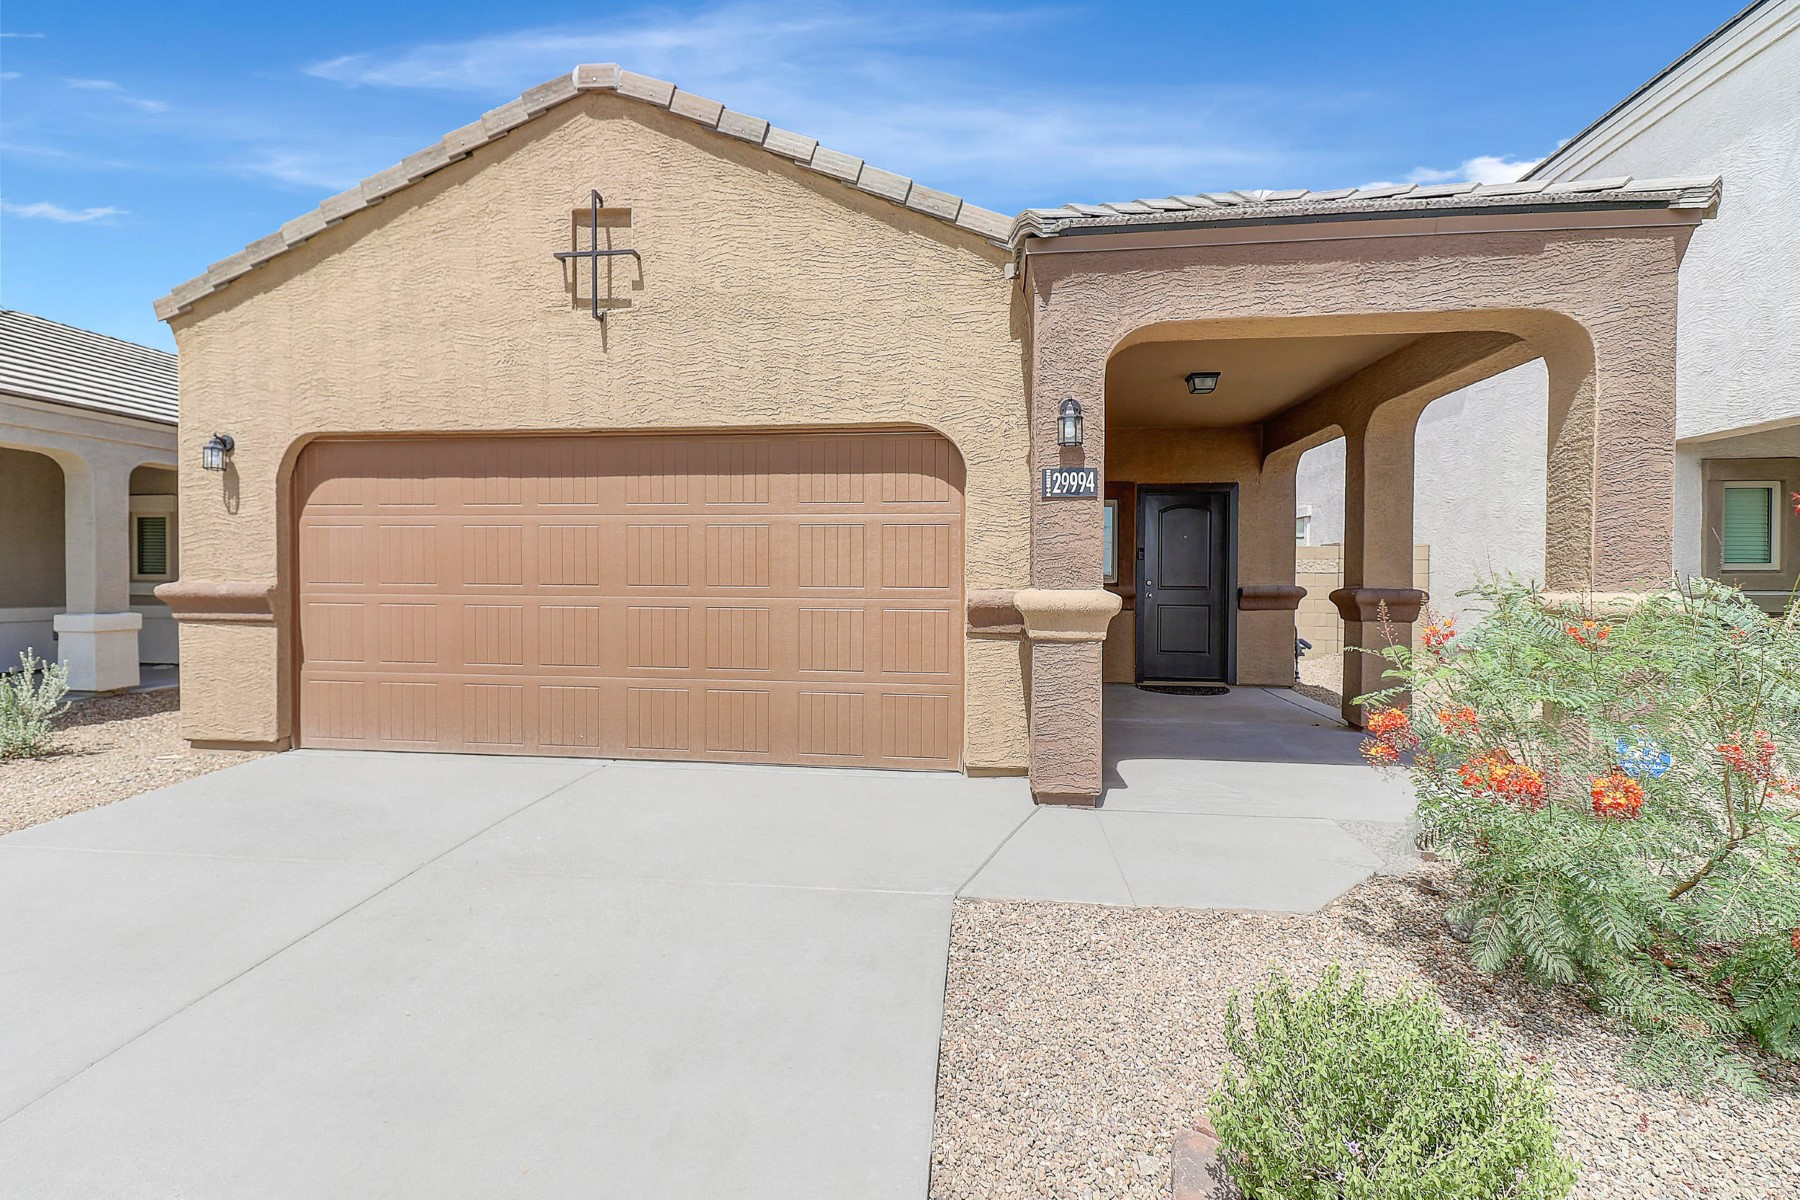 Single Family Homes for Sale at Gorgeous Single-Level Home 29994 W MULBERRY DR Buckeye, Arizona 85396 United States